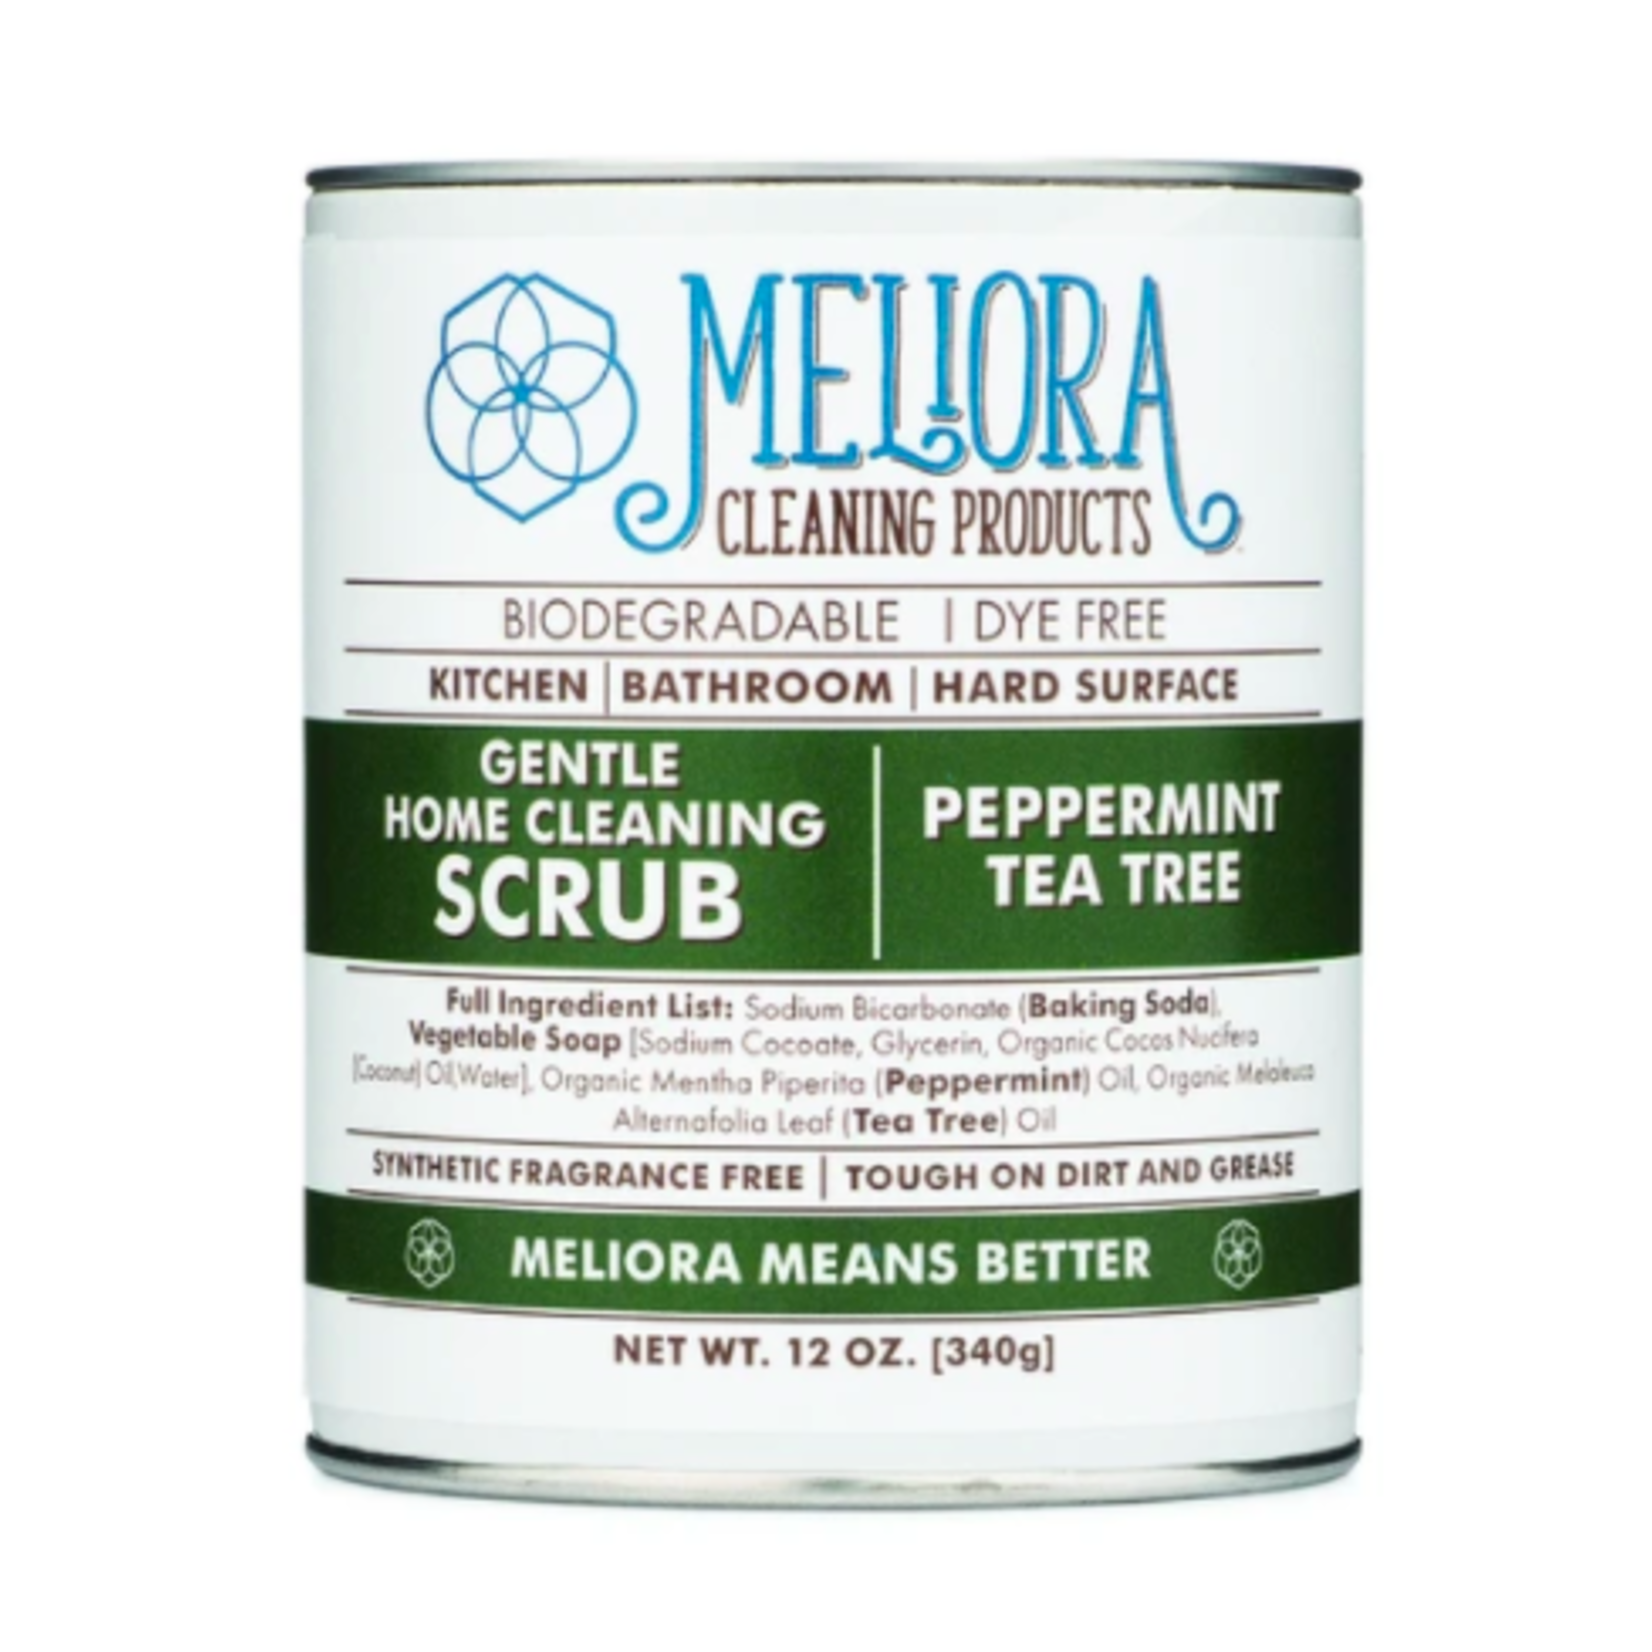 Meliora Cleaning Products Meliora Gentle Home Cleaning Scrub